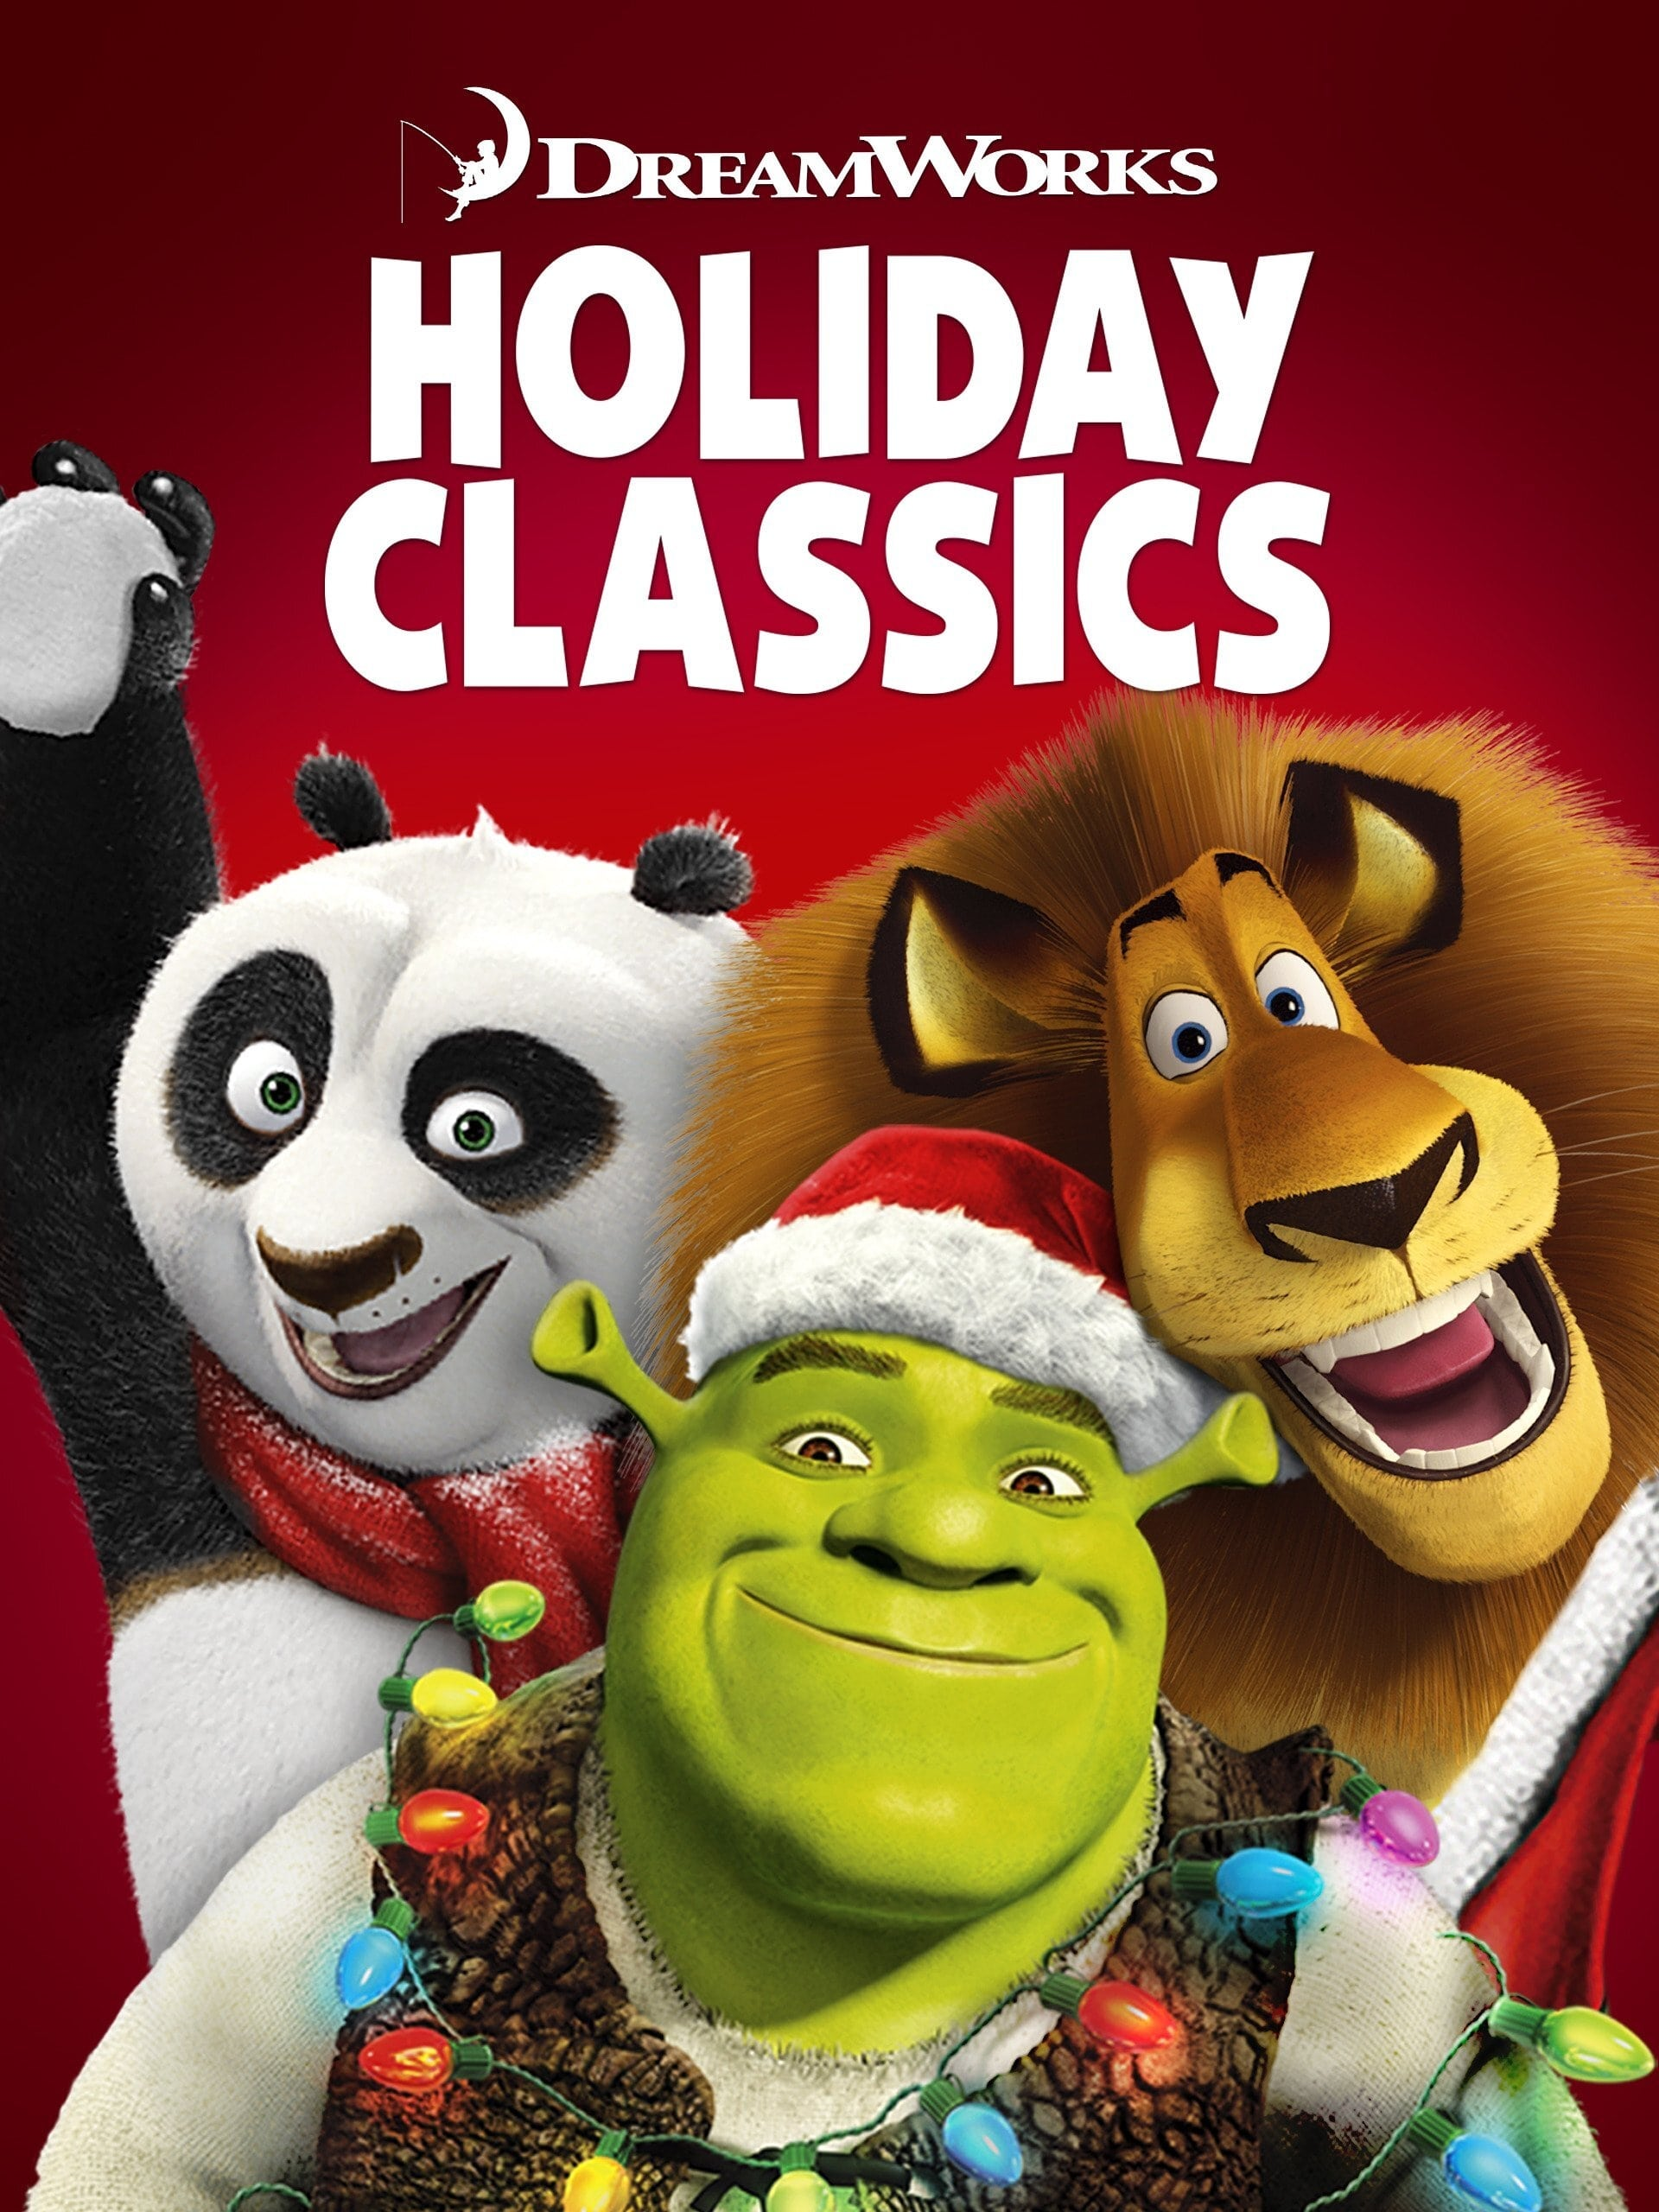 DreamWorks Holiday Classics (Merry Madagascar / Shrek the Halls / Gift of the Night Fury / Kung Fu Panda Holiday) (2012)